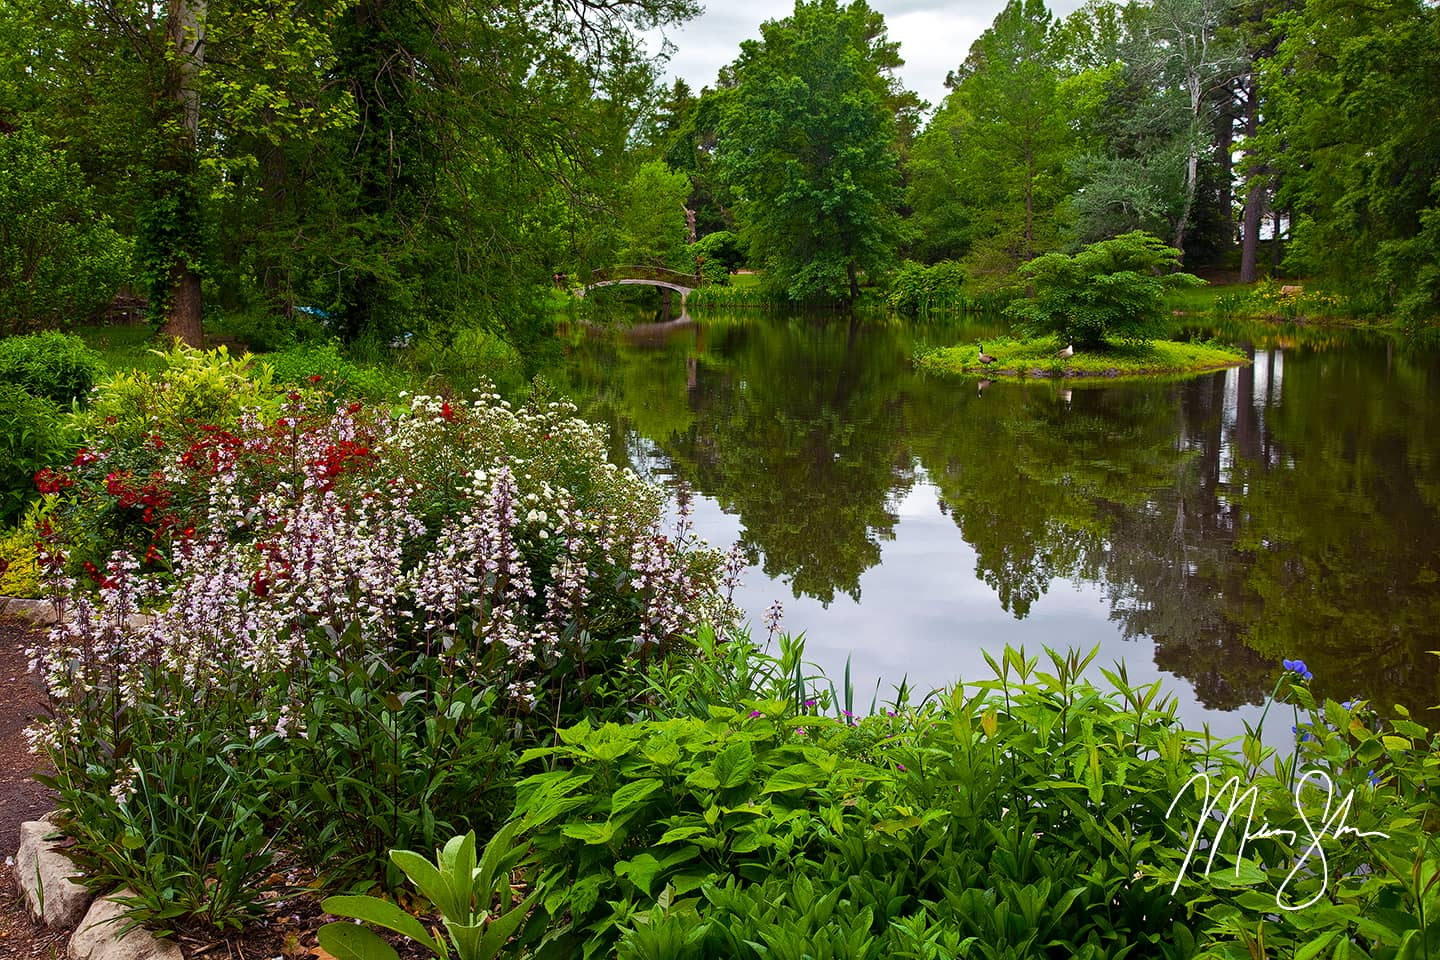 Open edition fine art print of Bartlett Arboretum Pond from Mickey Shannon Photography. Location: Bartlett Arboretum, Belle Plaine, Kansas